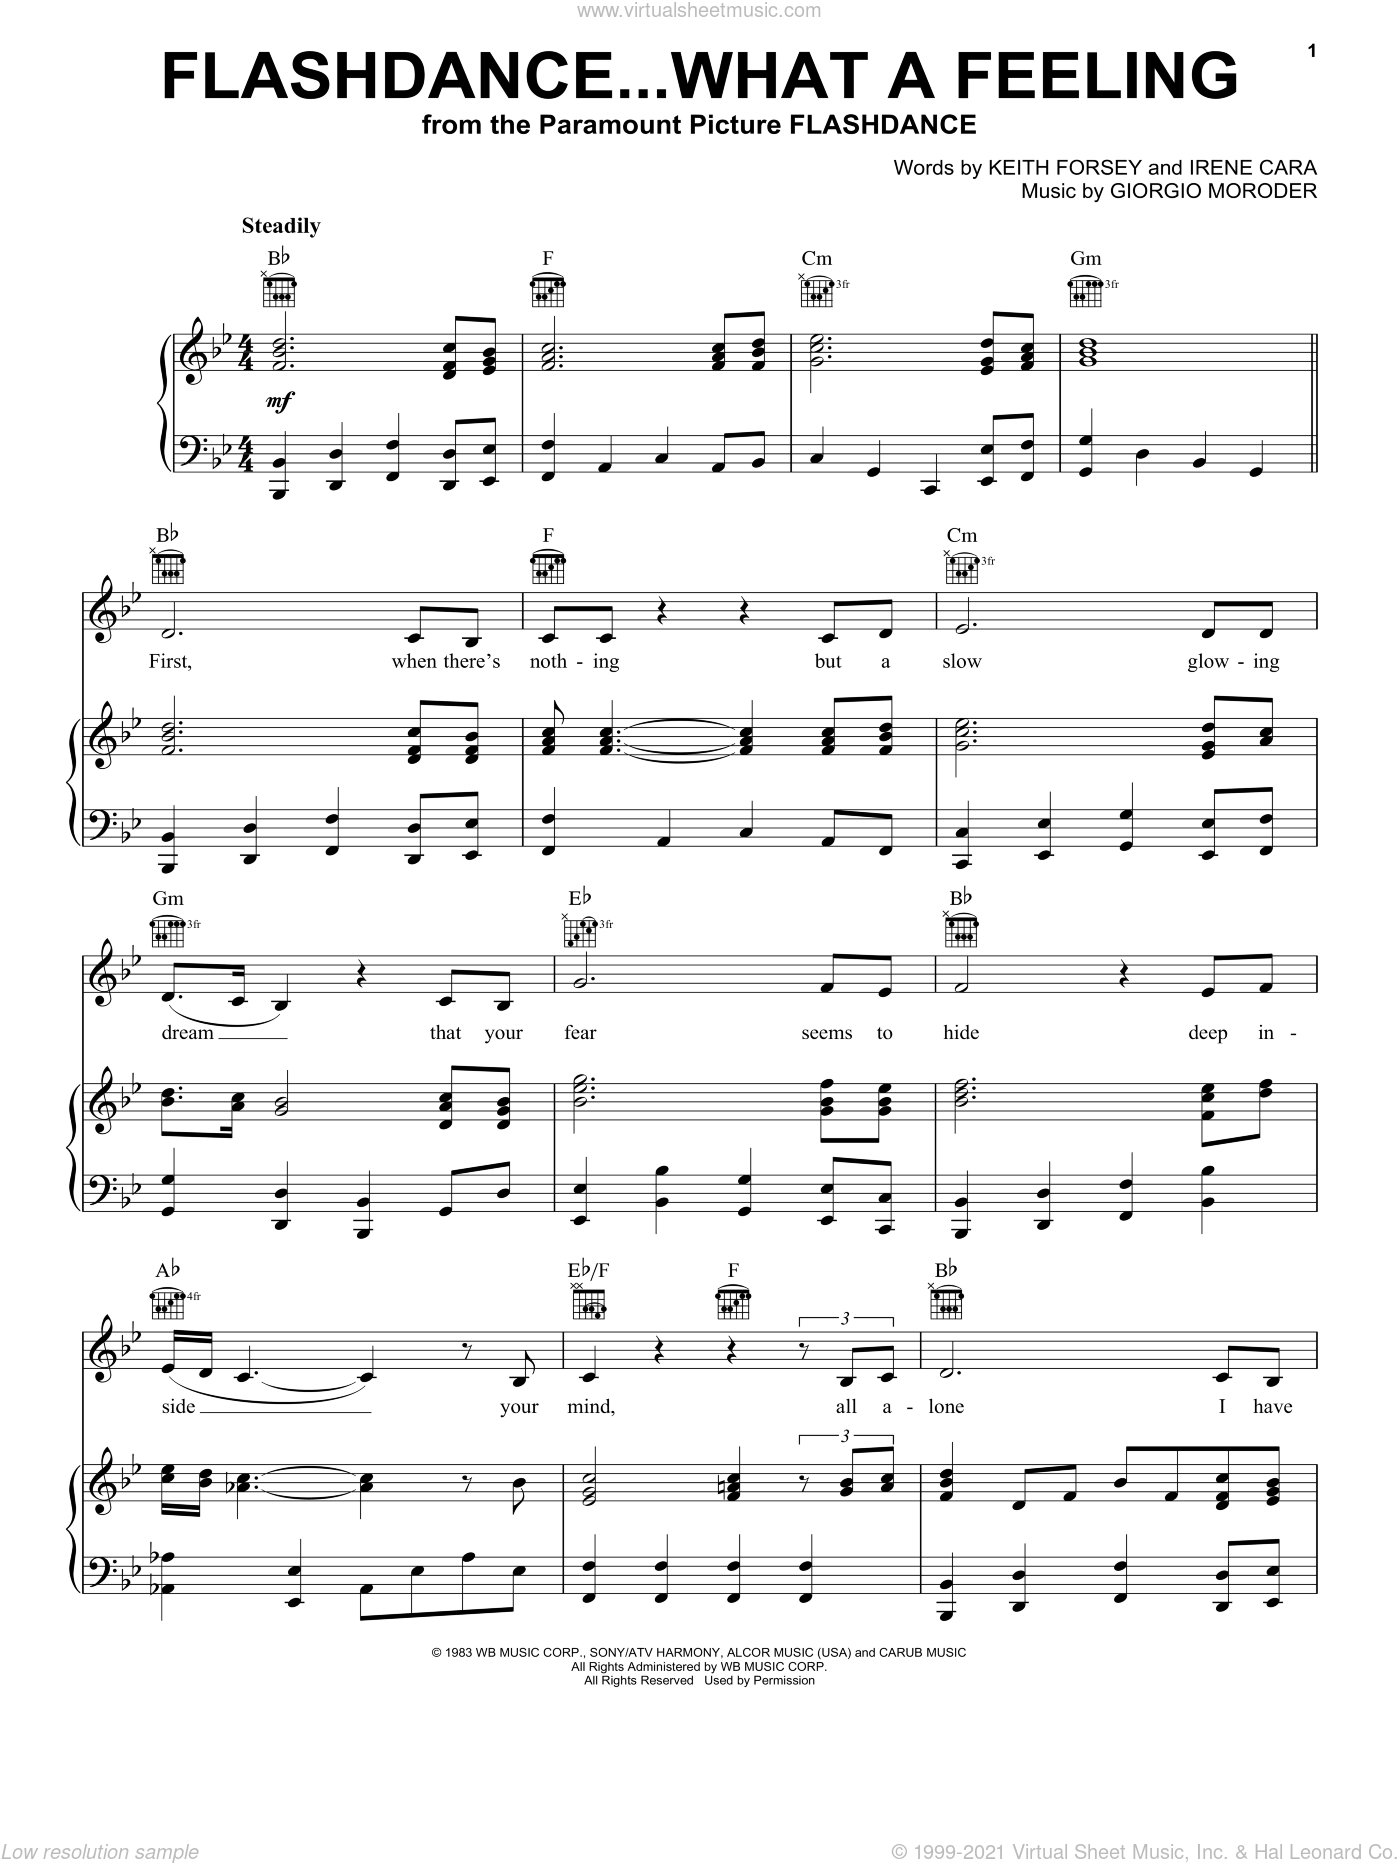 Flashdance...What A Feeling sheet music for voice, piano or guitar by Irene Cara, Giorgio Moroder and Keith Forsey, intermediate skill level